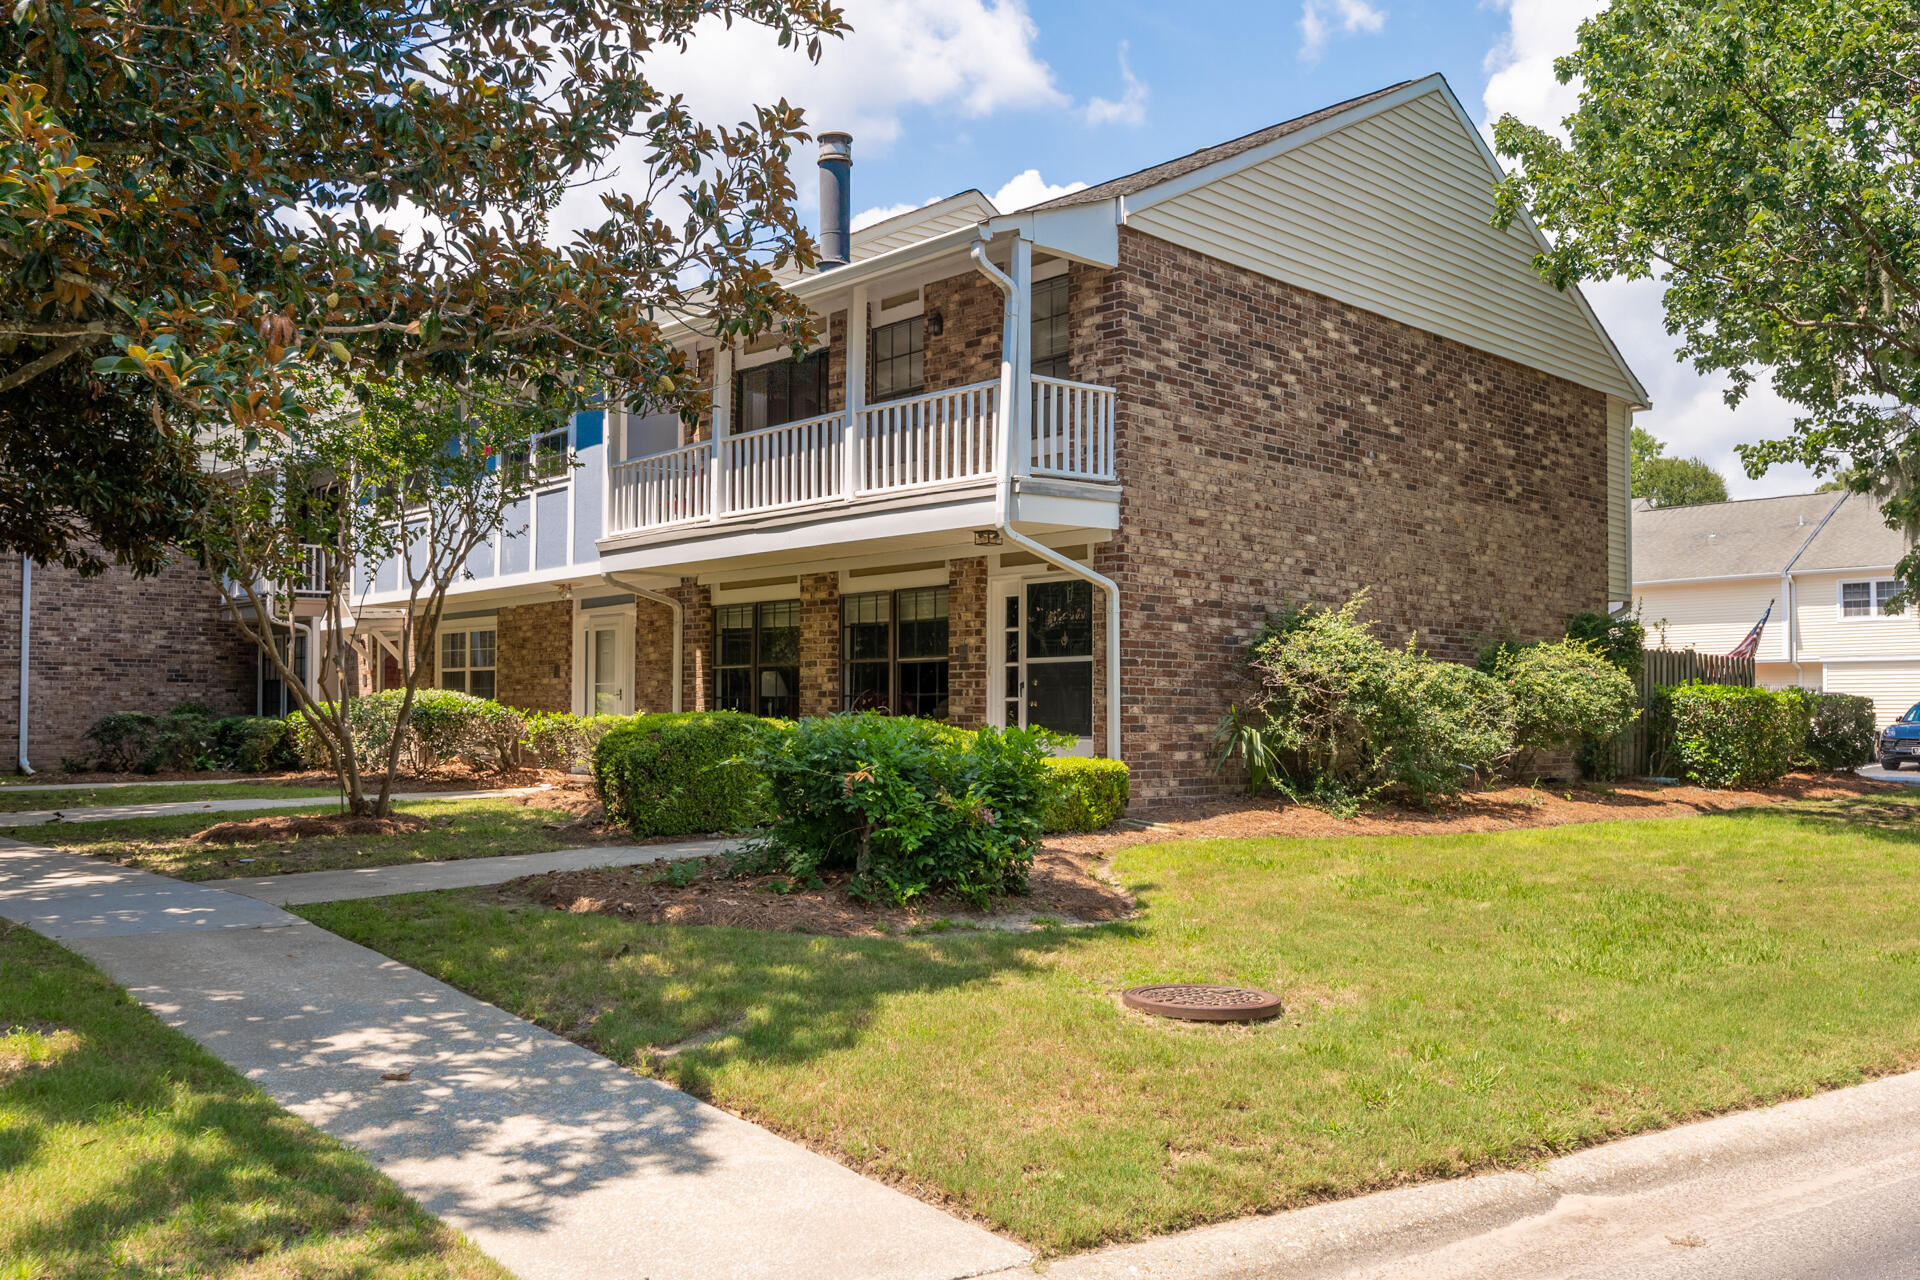 Old Towne Villas Homes For Sale - 2931 Cathedral, Charleston, SC - 2